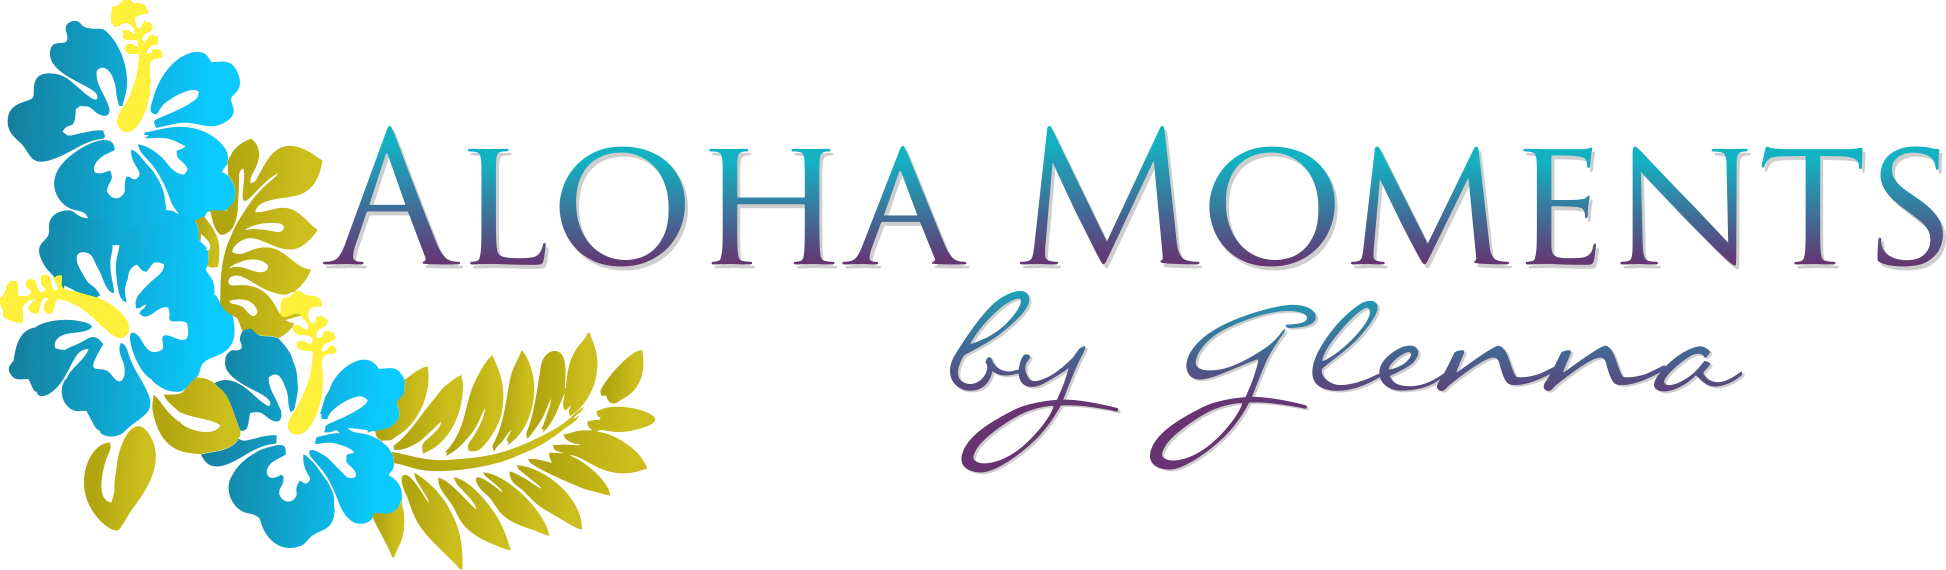 Aloha Moments by Glenna